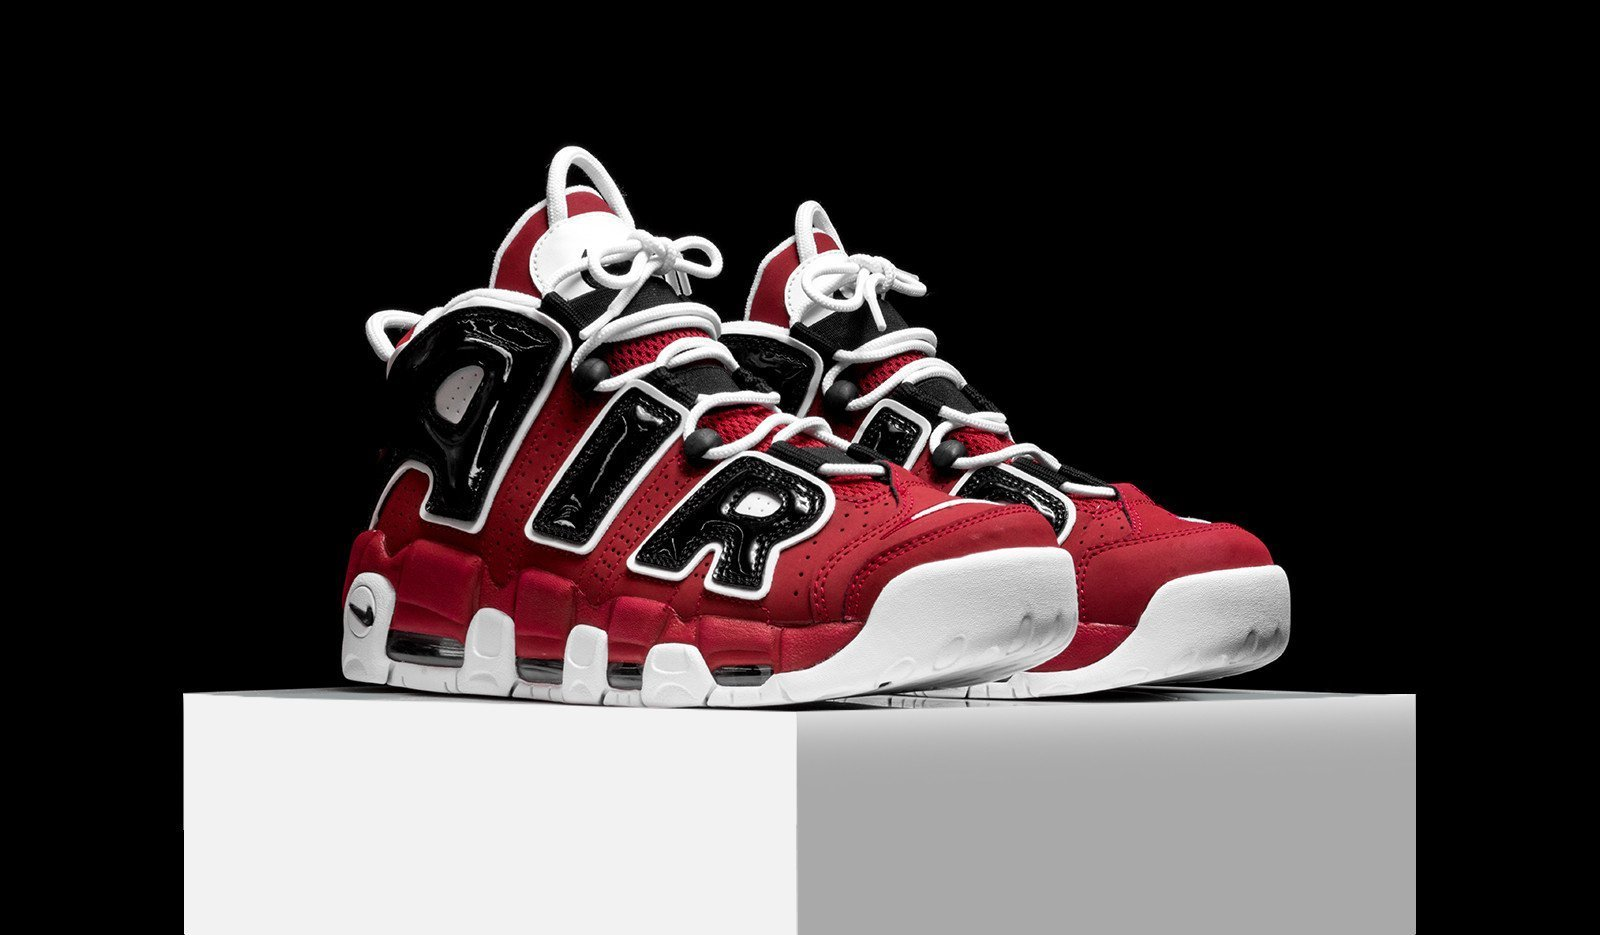 NIKE AIR MORE UPTEMPO 96 HOOP PACK Varsity Red モアテン